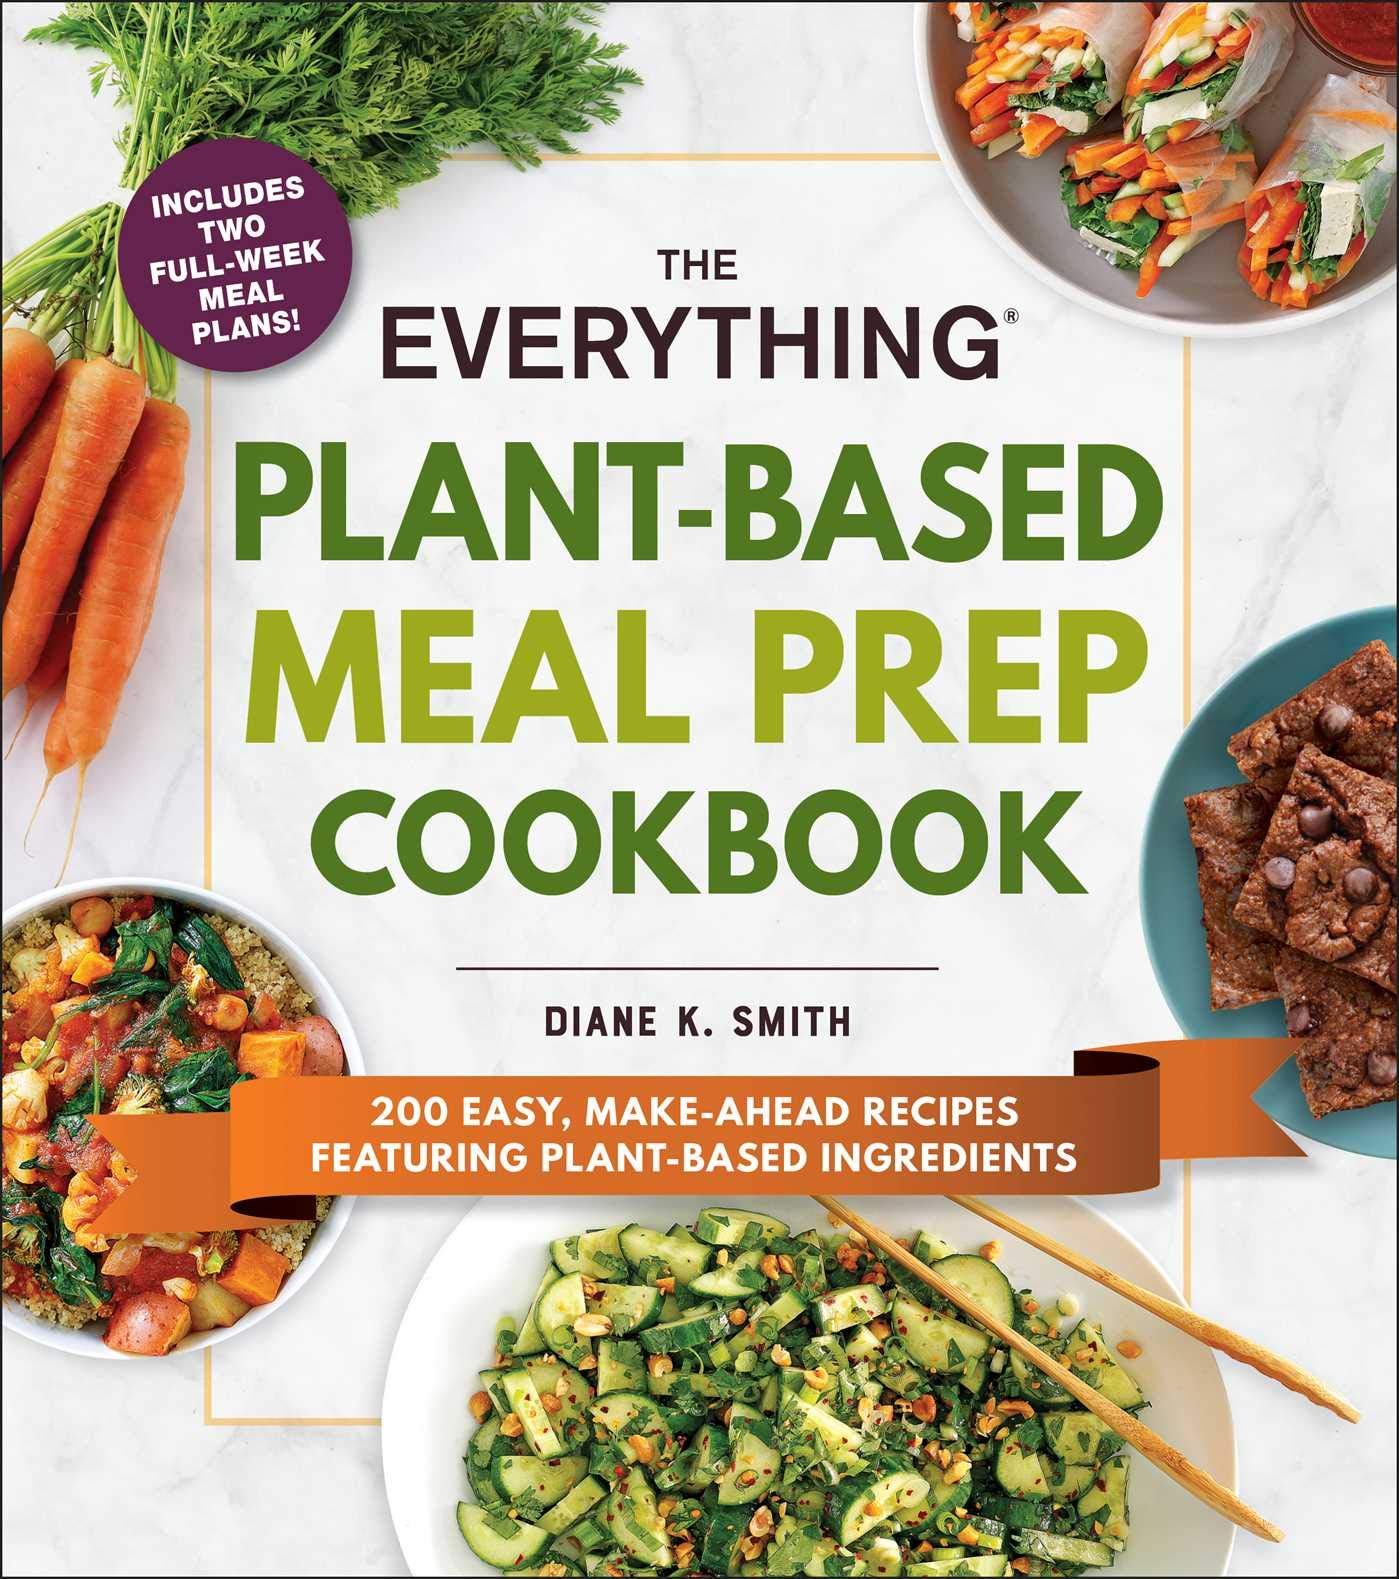 The Everything Plant-Based Meal Prep Cookbook: 200 Easy, Make-Ahead Recipes Featuring Plant-Based Ingredients 1